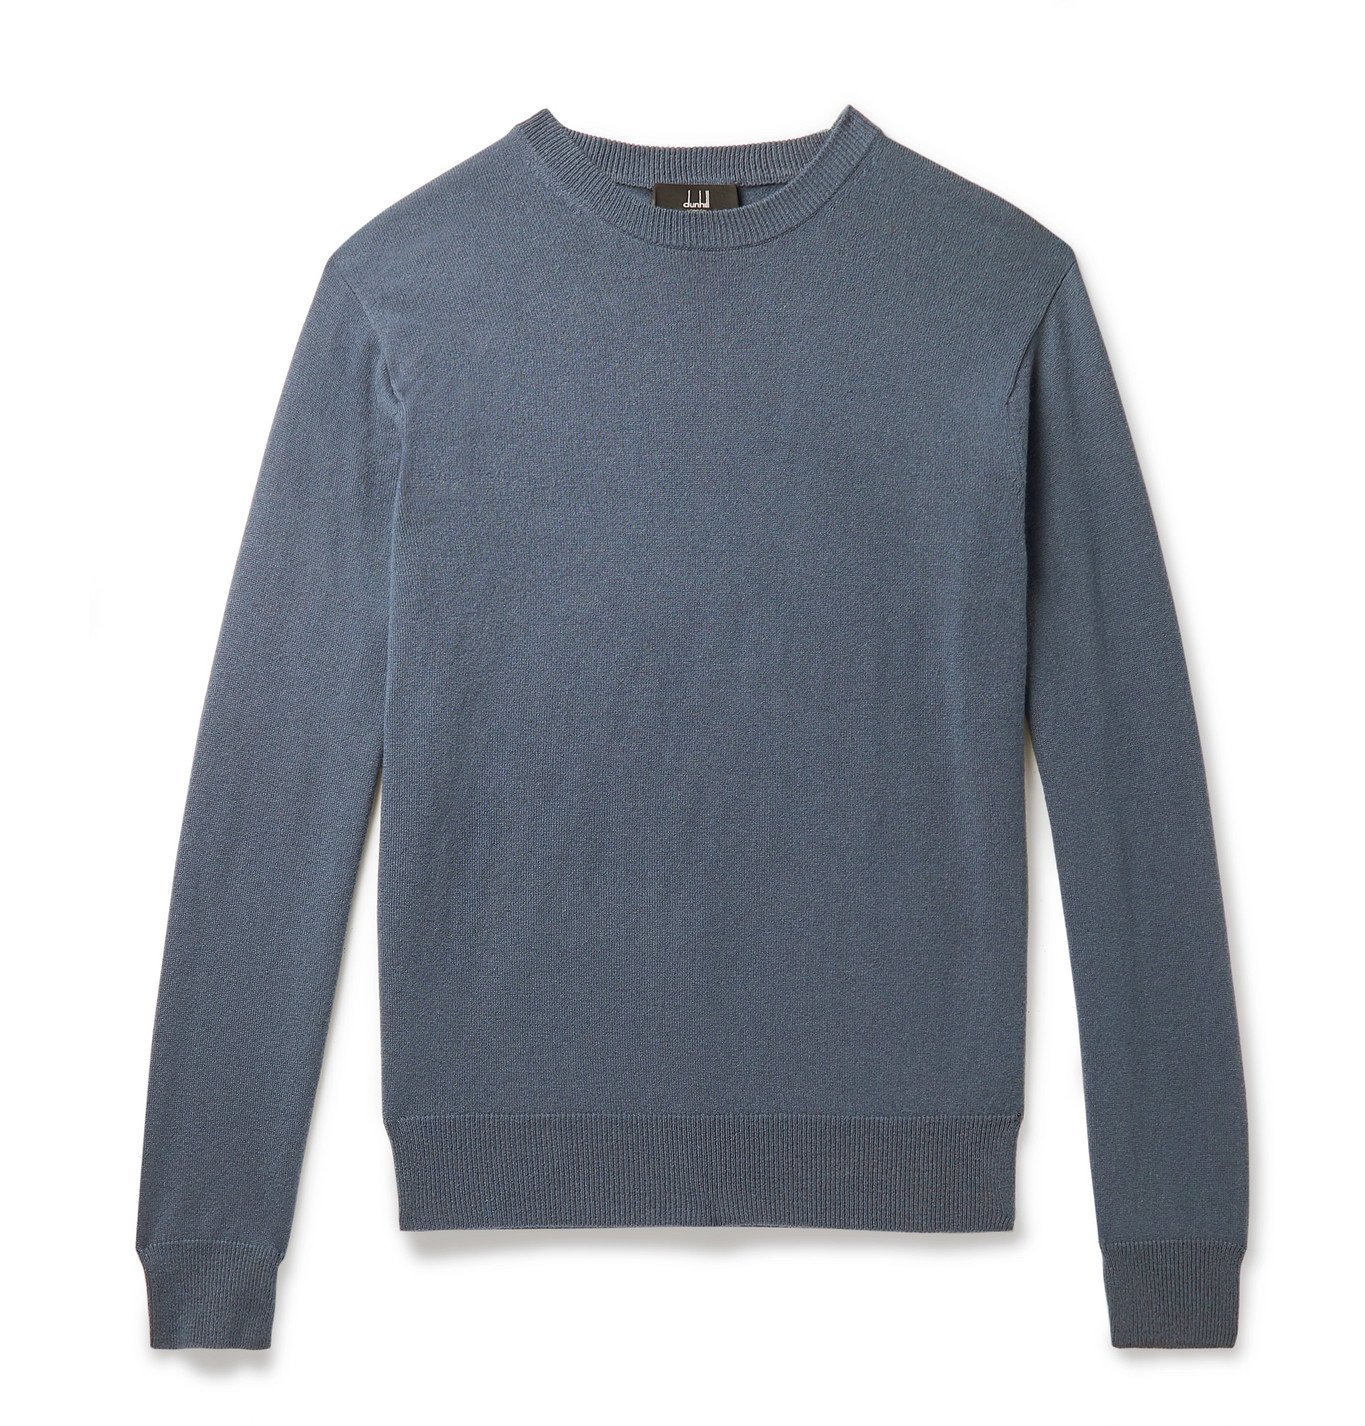 Dunhill - Cashmere Sweater - Blue